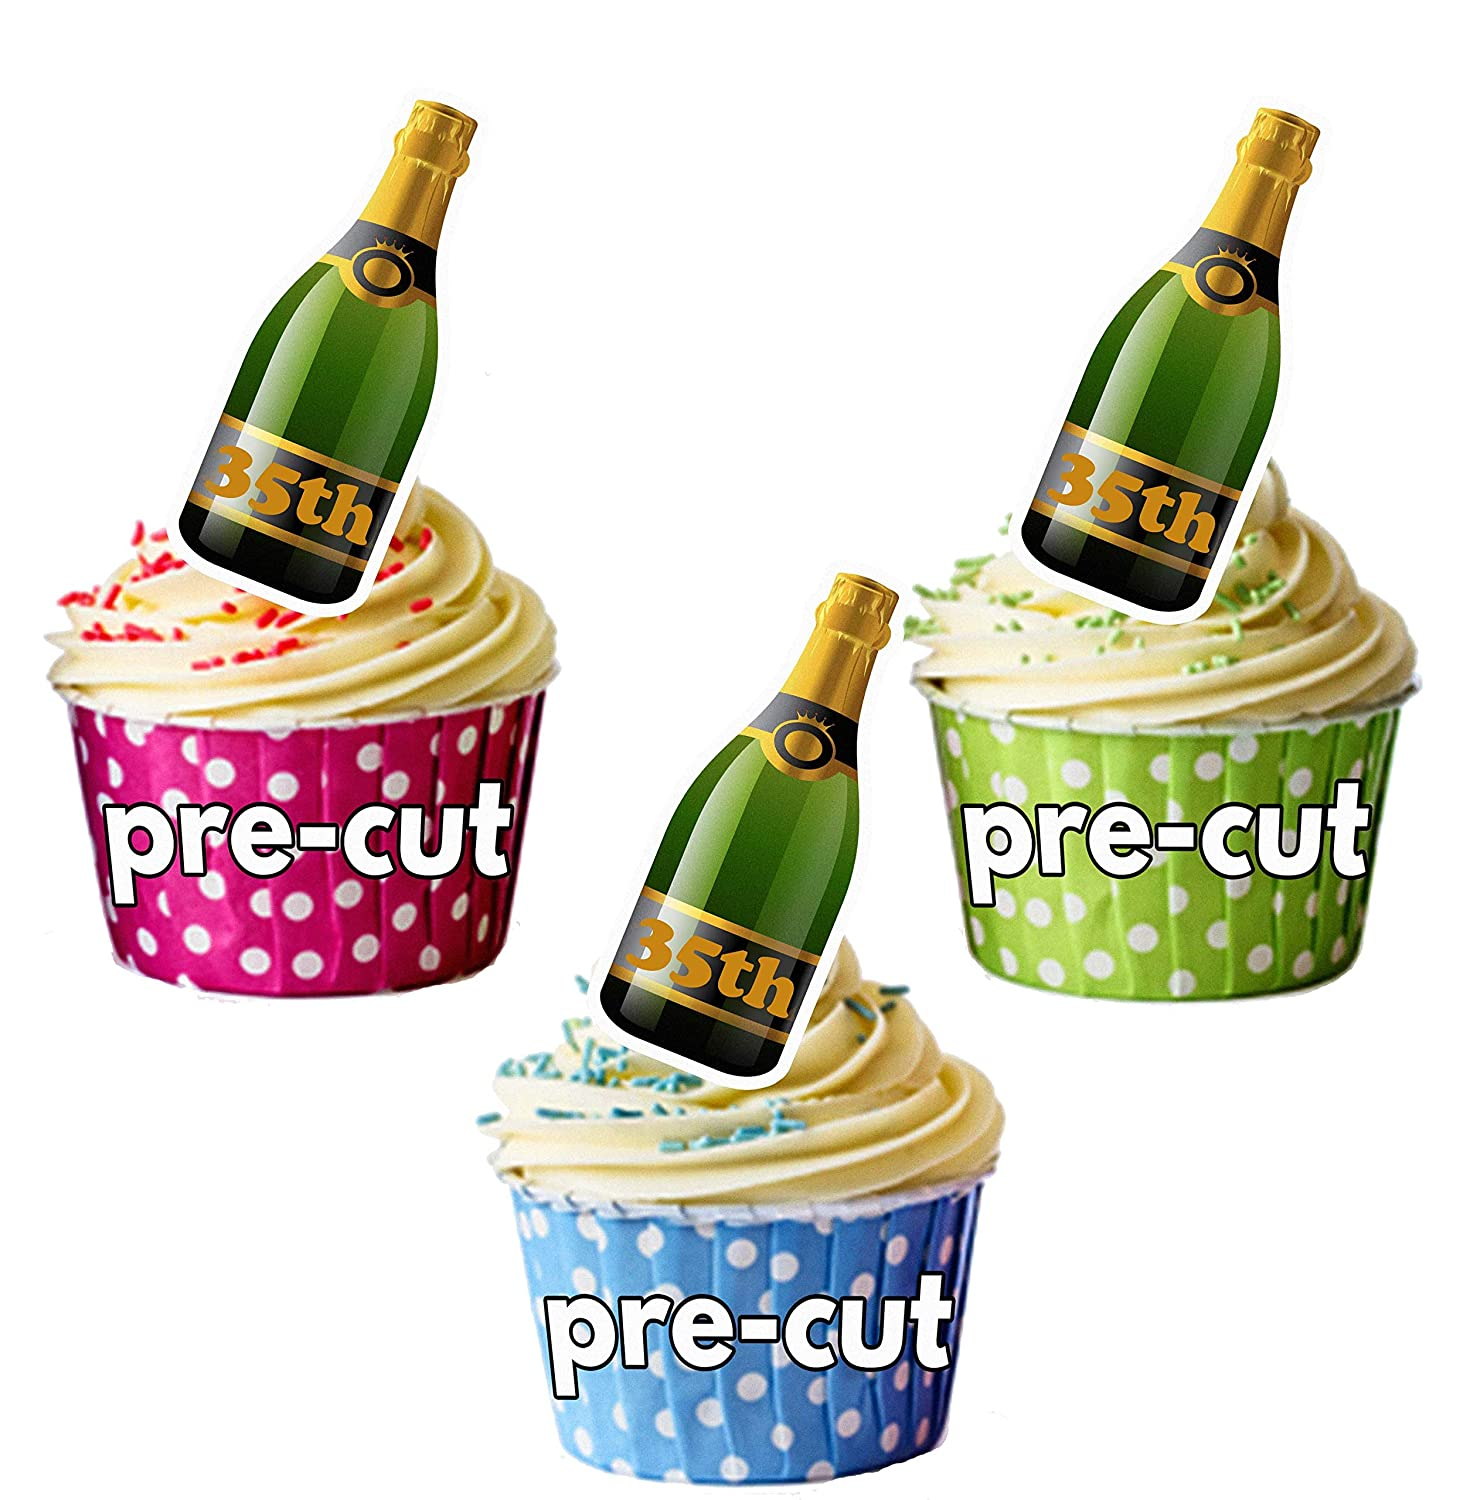 PRE-CUT 35th Champagne Bottle - Edible Cupcake Toppers Birthday/Anniversary Cake Decorations (Pack of 24)